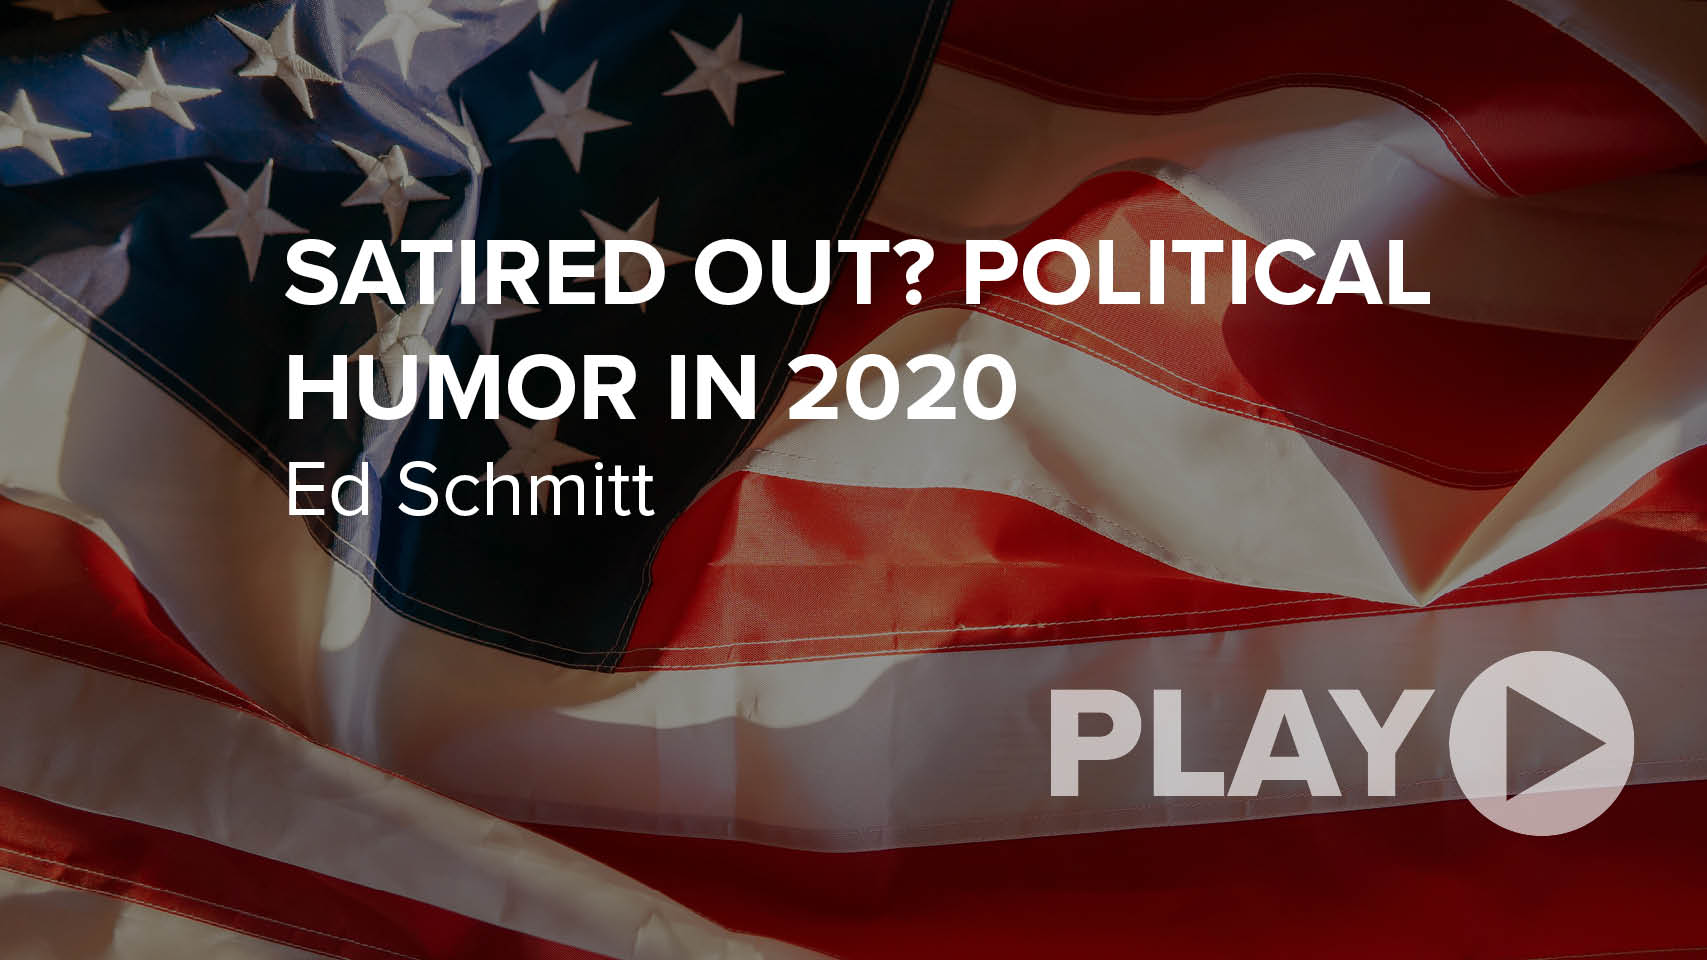 Satired Out? Political Humor in 2020